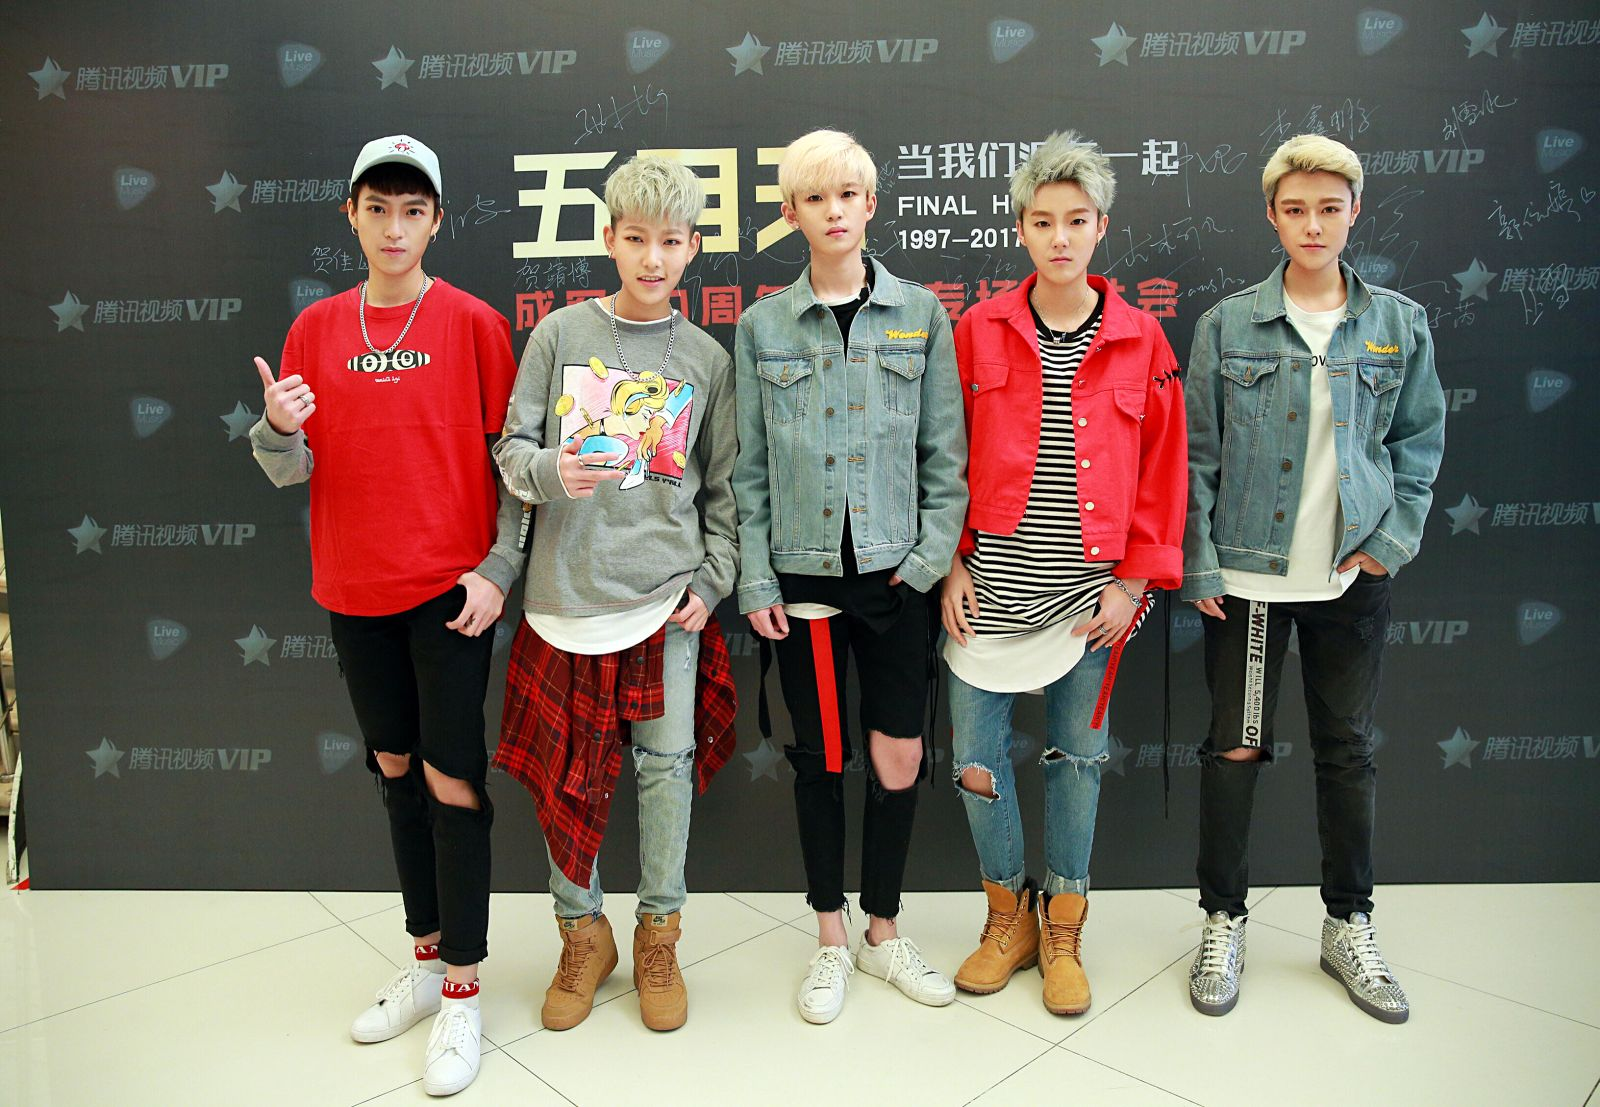 chinas-all-girl-boy-band